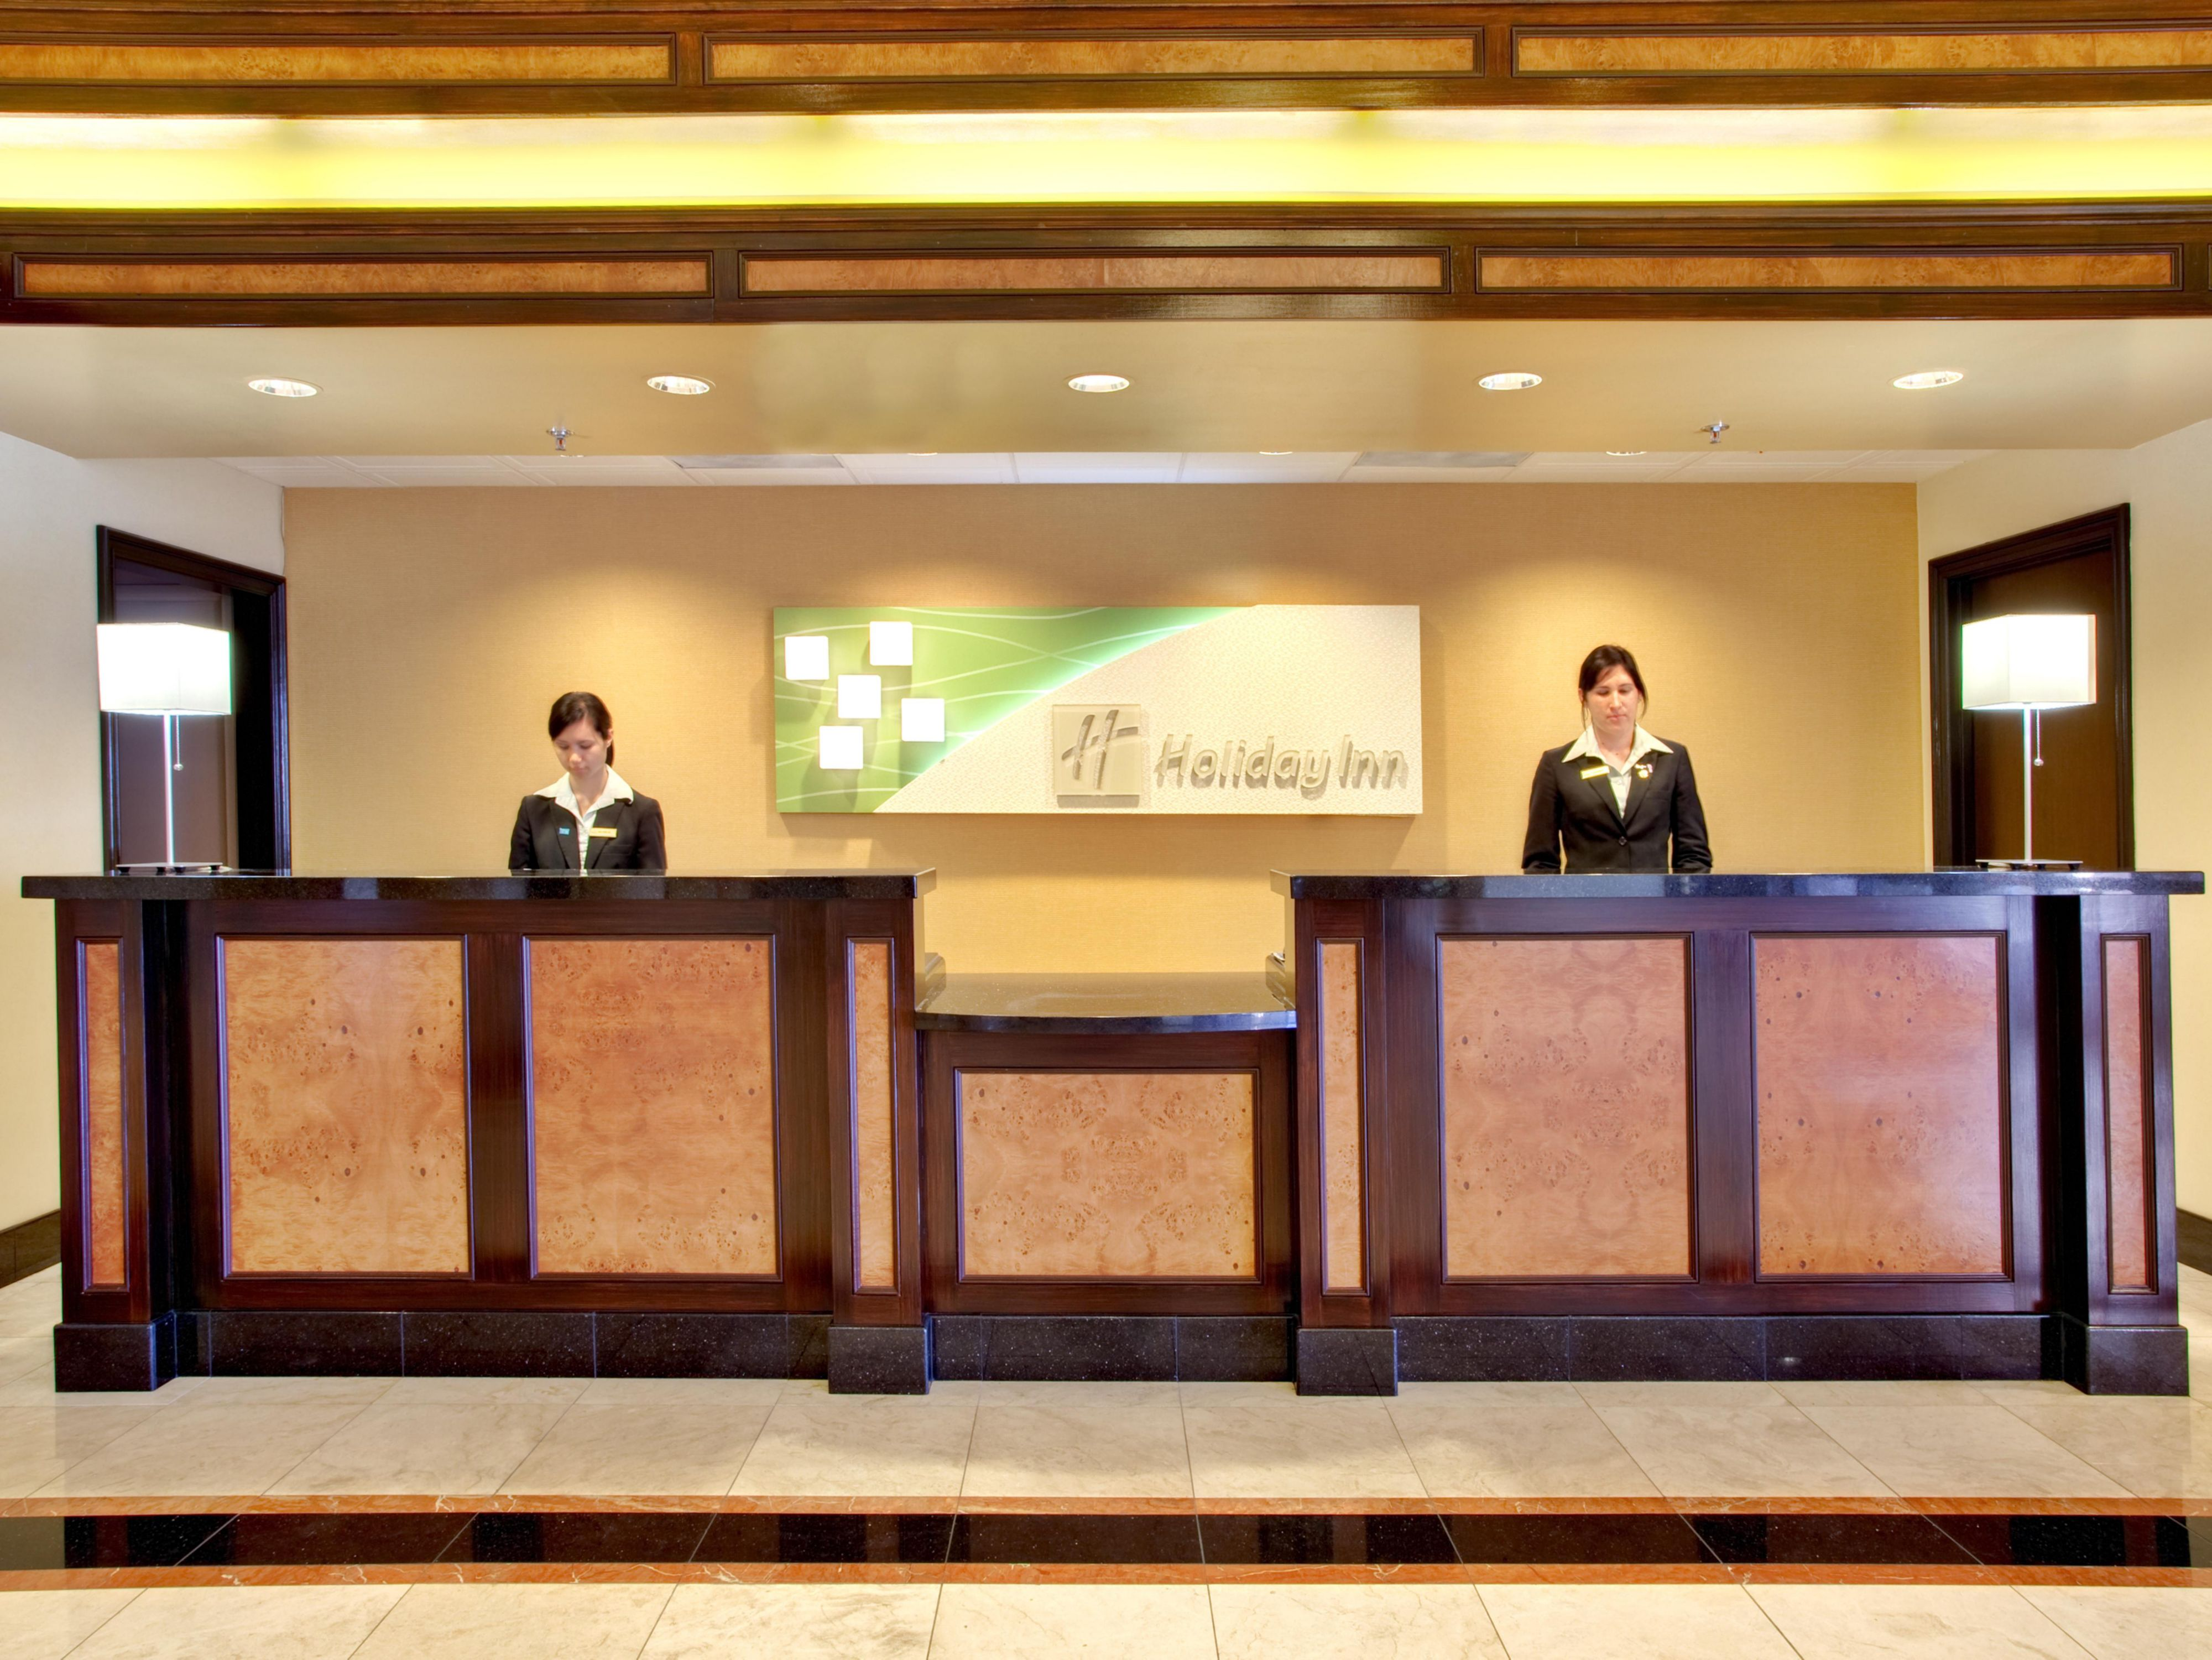 Holiday Inn San Diego Miramar Front Desk